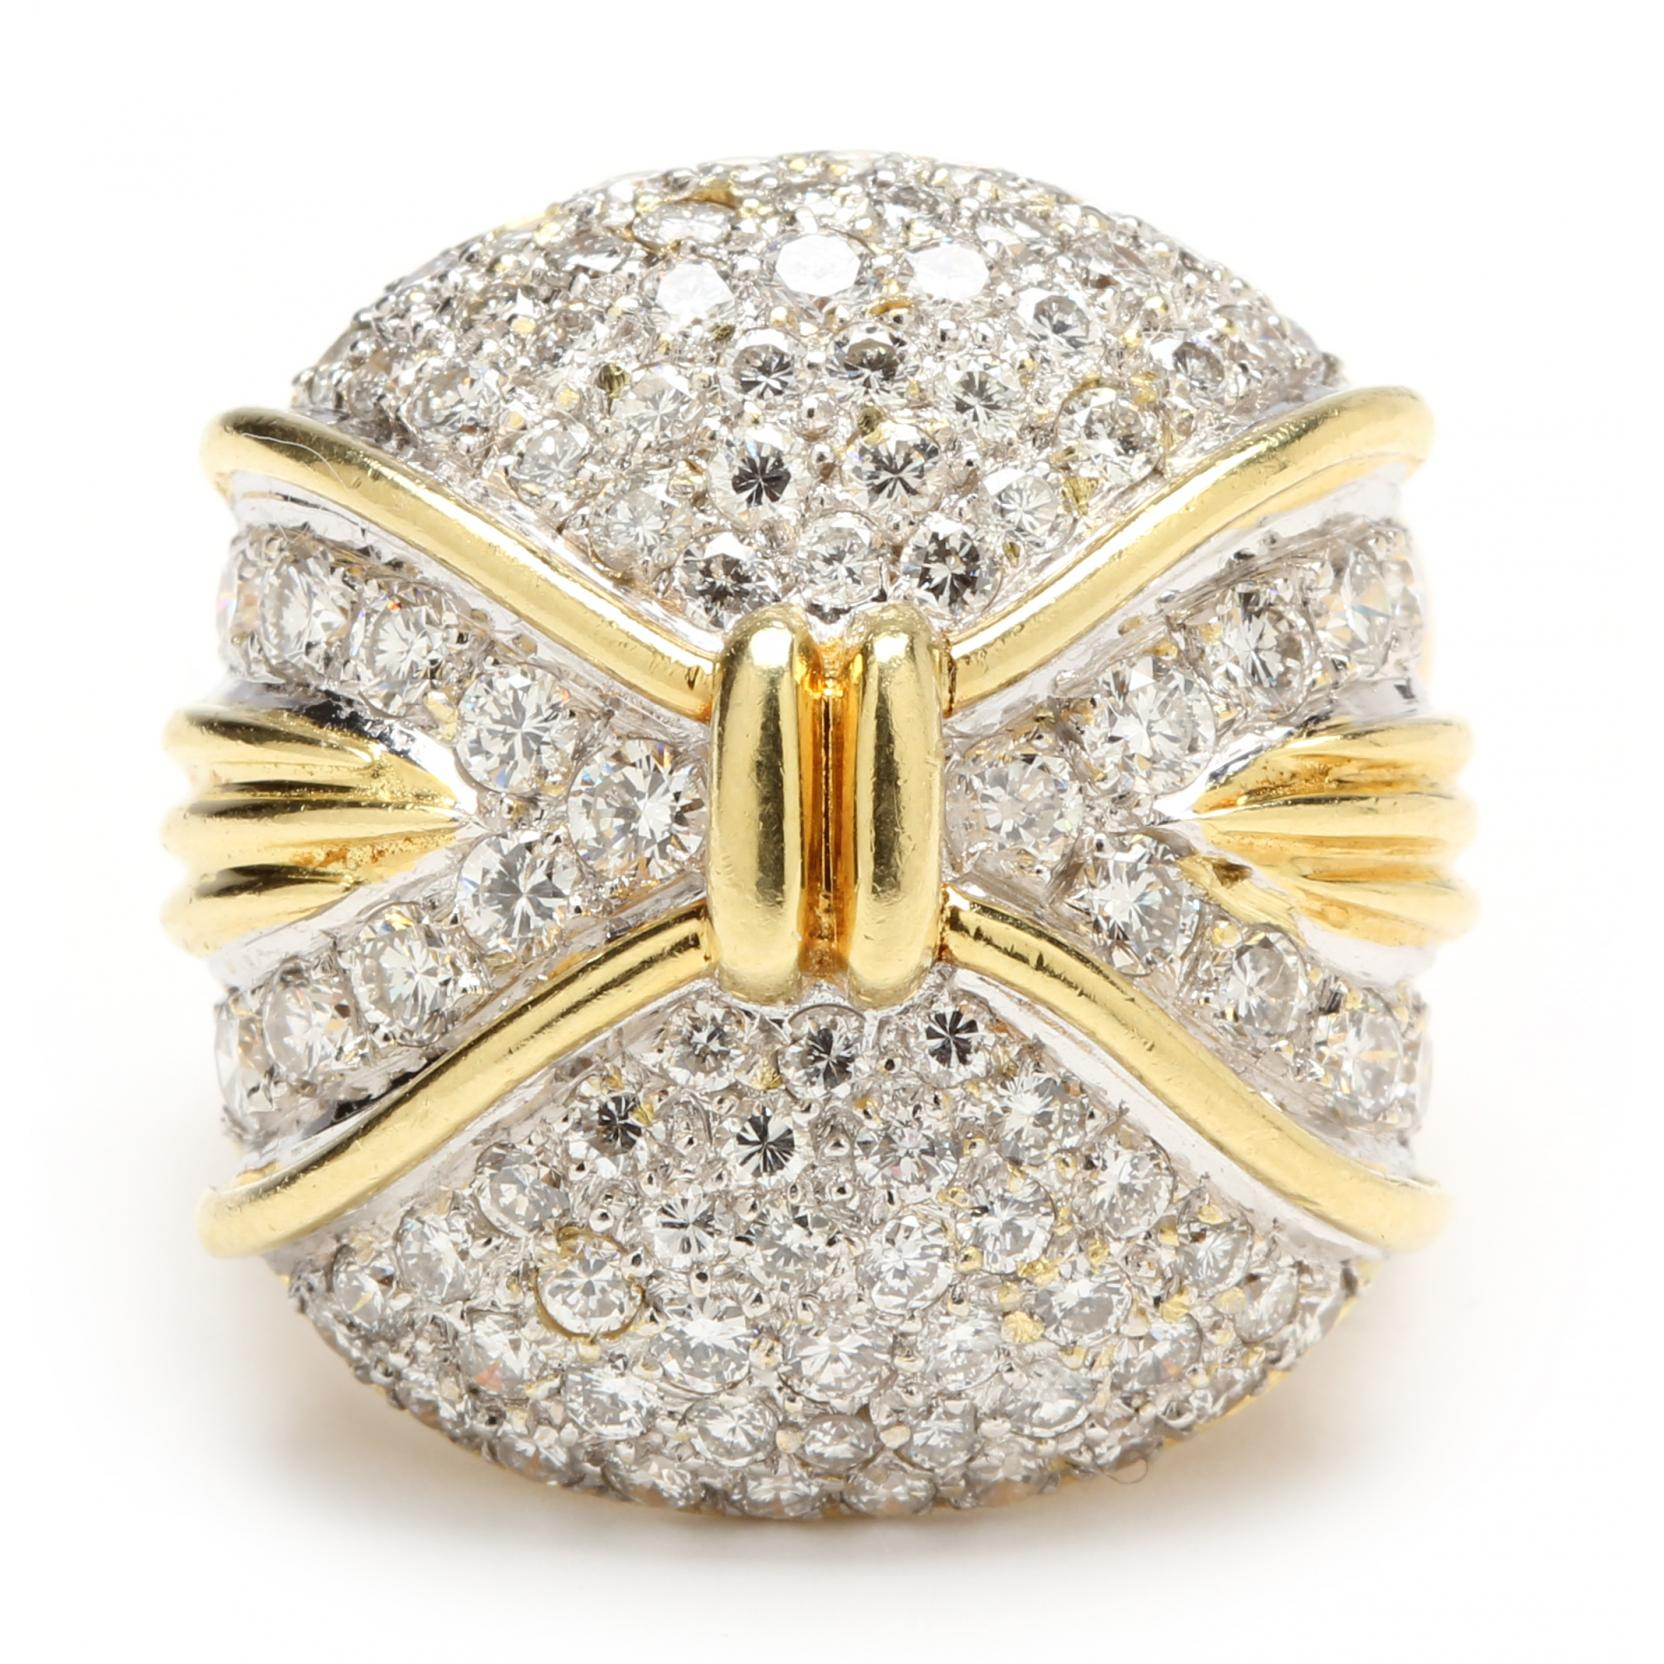 18kt-gold-and-diamond-ring